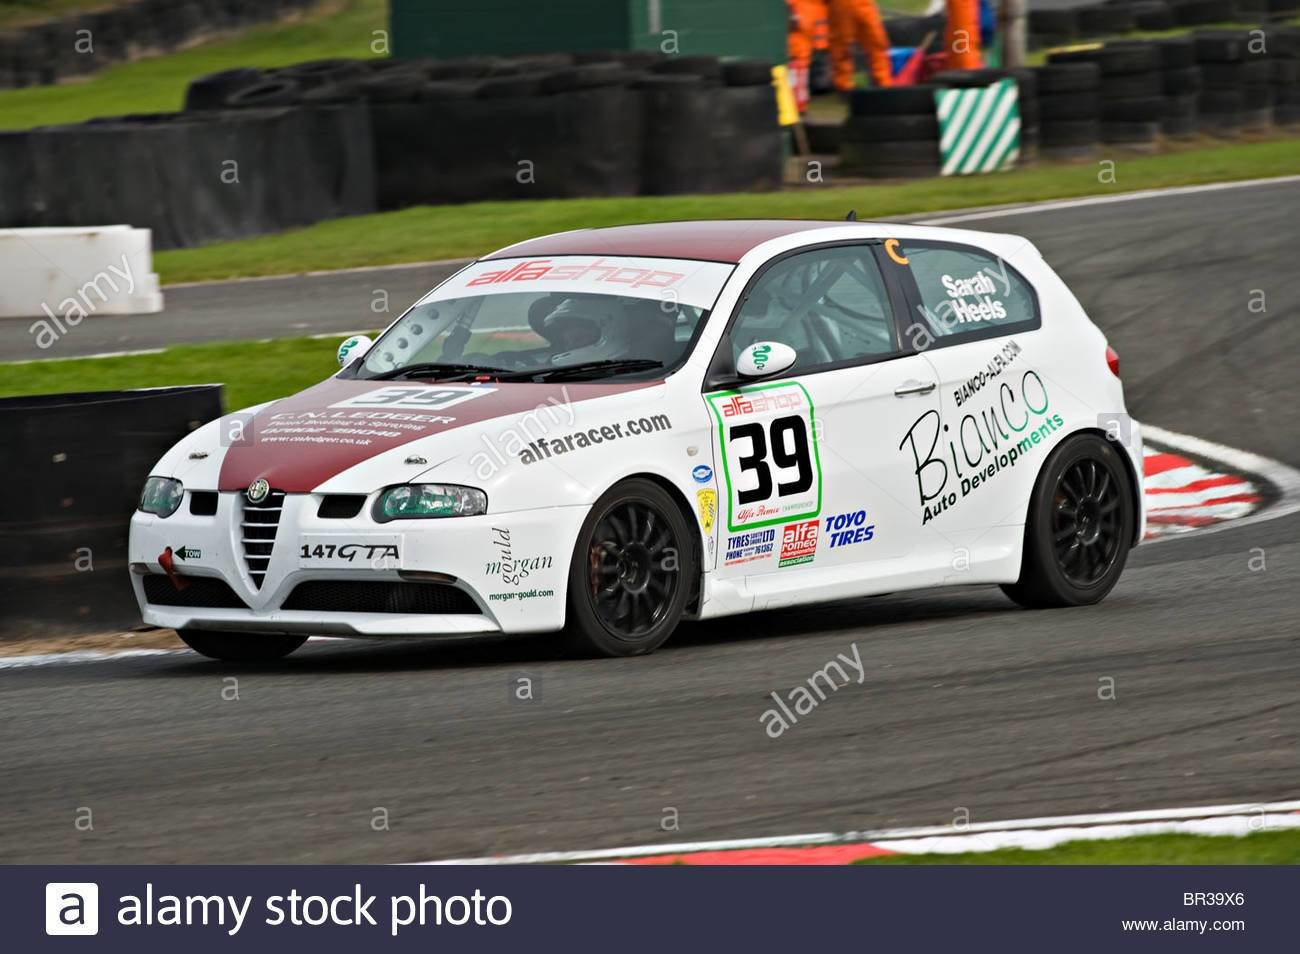 Latest Alfashop Alfa Romeo 147 Gta Race Car At Oulton Park Motor Free Download